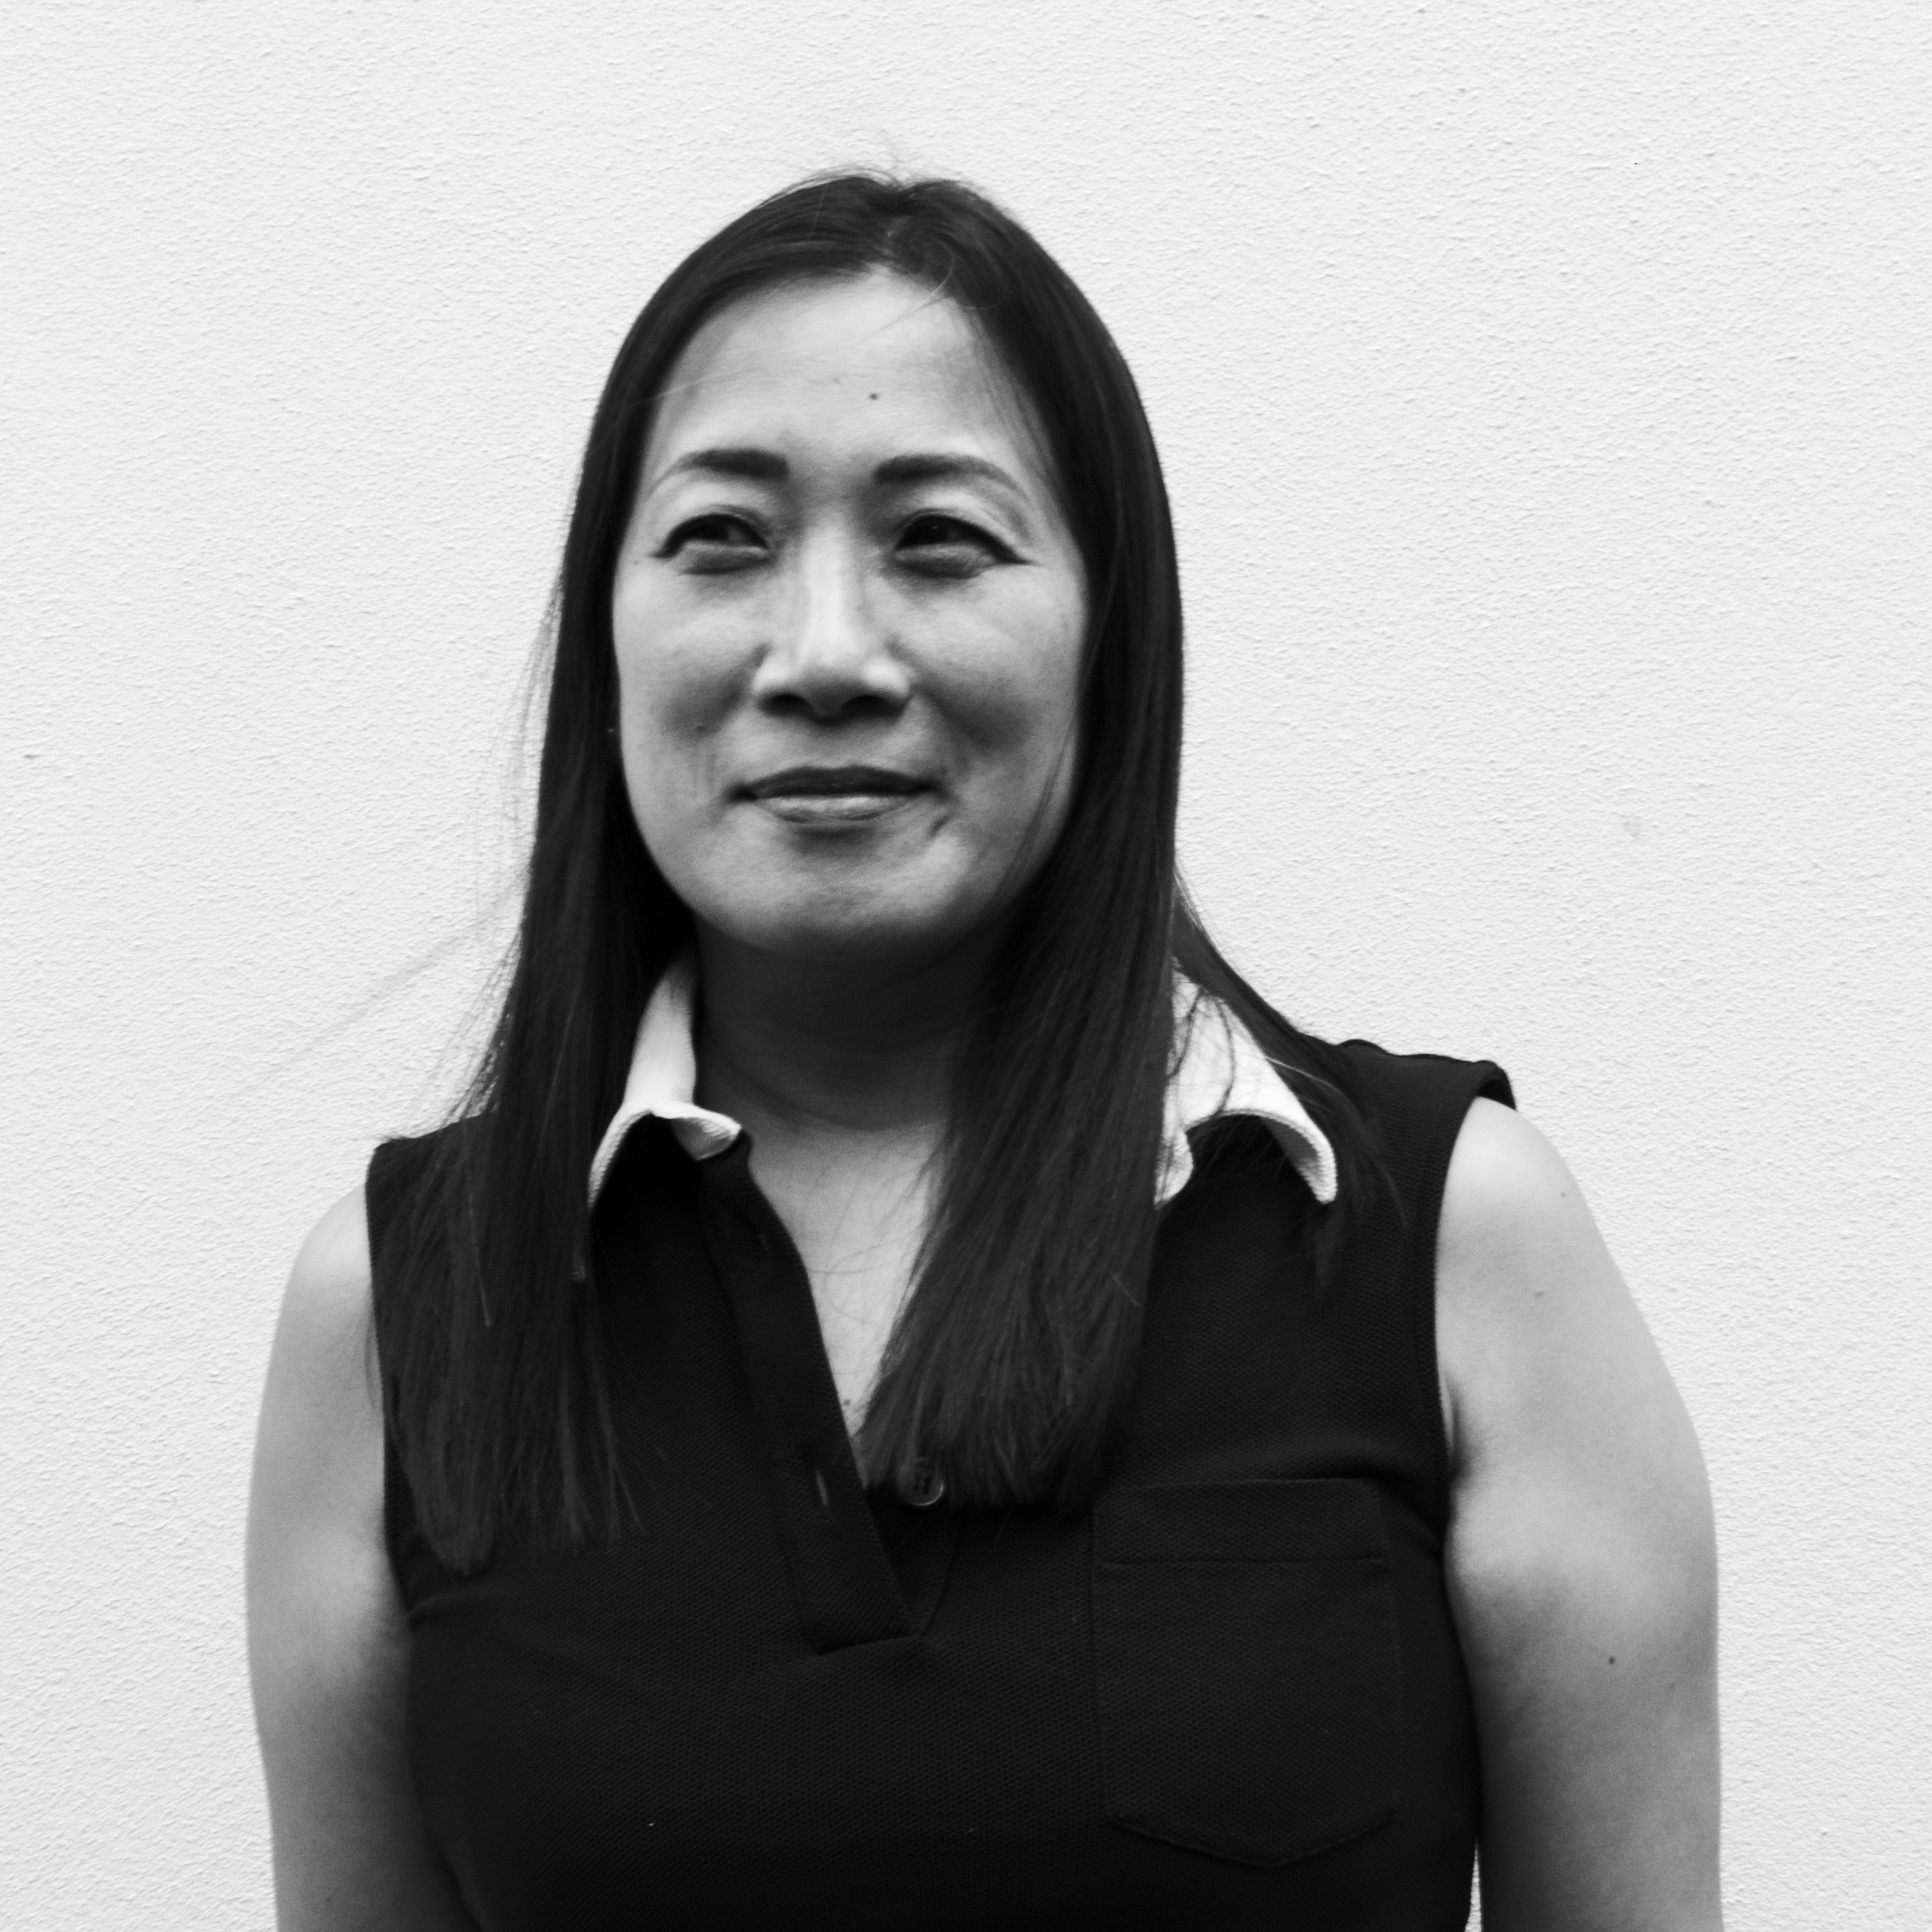 partnerships - Judith Tan is responsible for building Native Finance's relationships with origination partners. She has over 25 years experience specialising in real estate funding within global banks and investment organisations. In her senior roles at Investec, Morgan Stanley, Lehman Brothers and Nomura, she led and managed origination, transaction and asset management teams, originating in excess of £5.5bn+ of transactions at Investec plc.